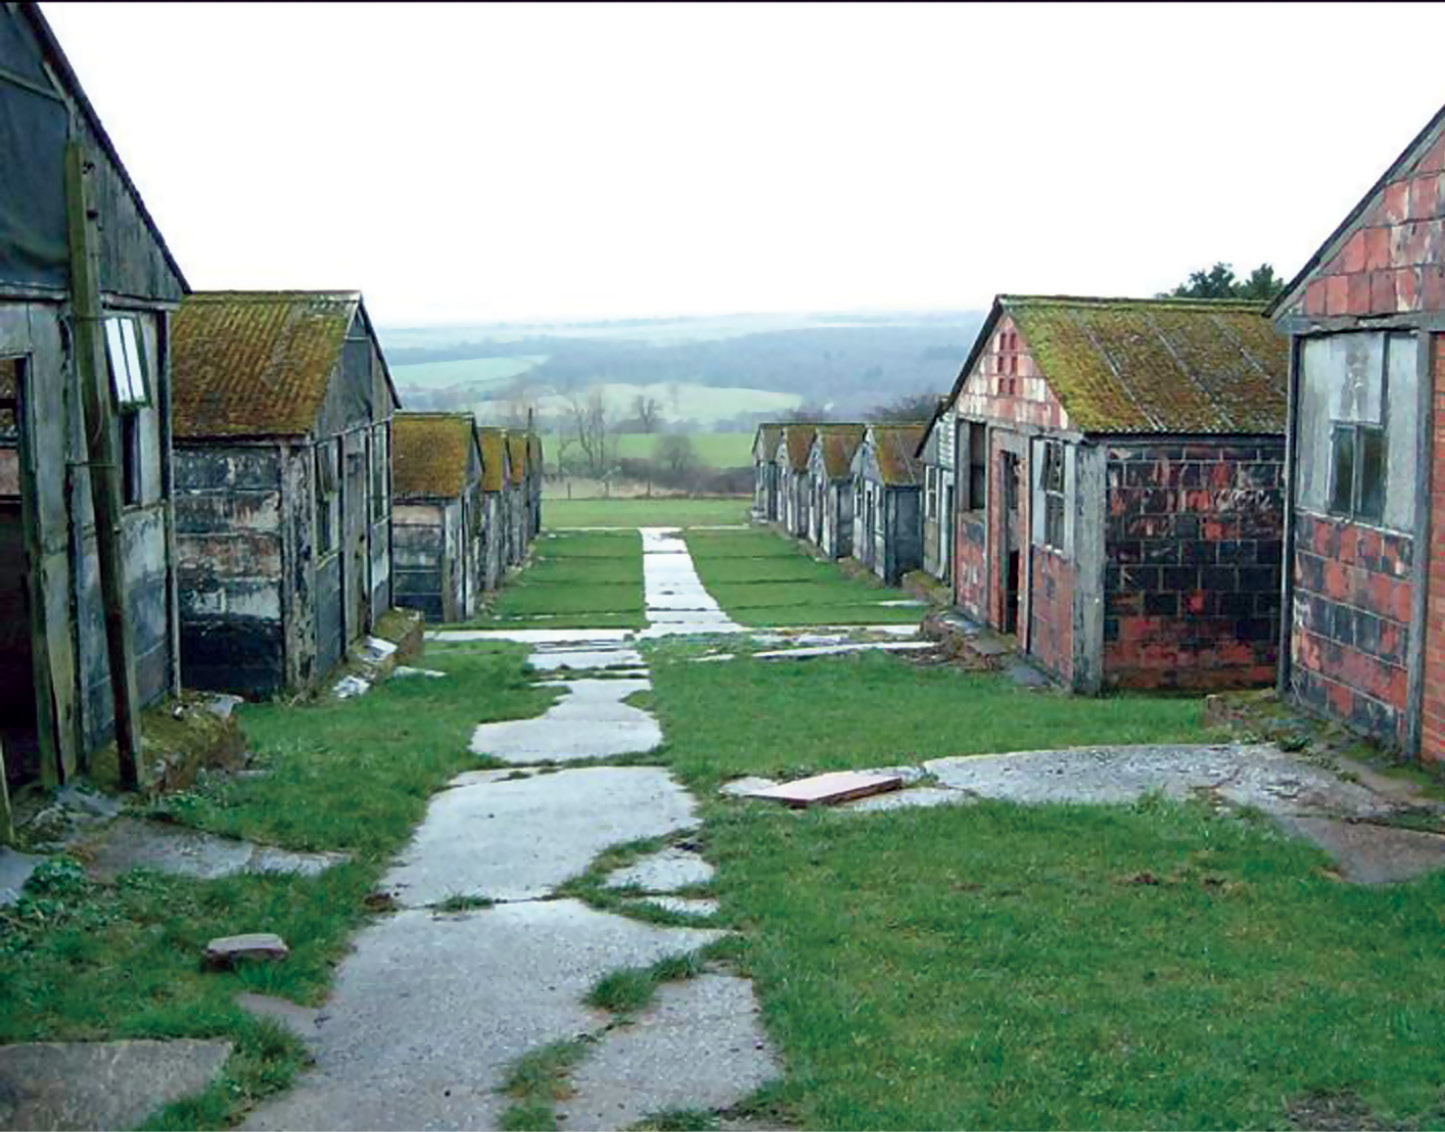 ABOVE These huts, which once provided a home for German prisoners of war, are now in urgent need of preservation.